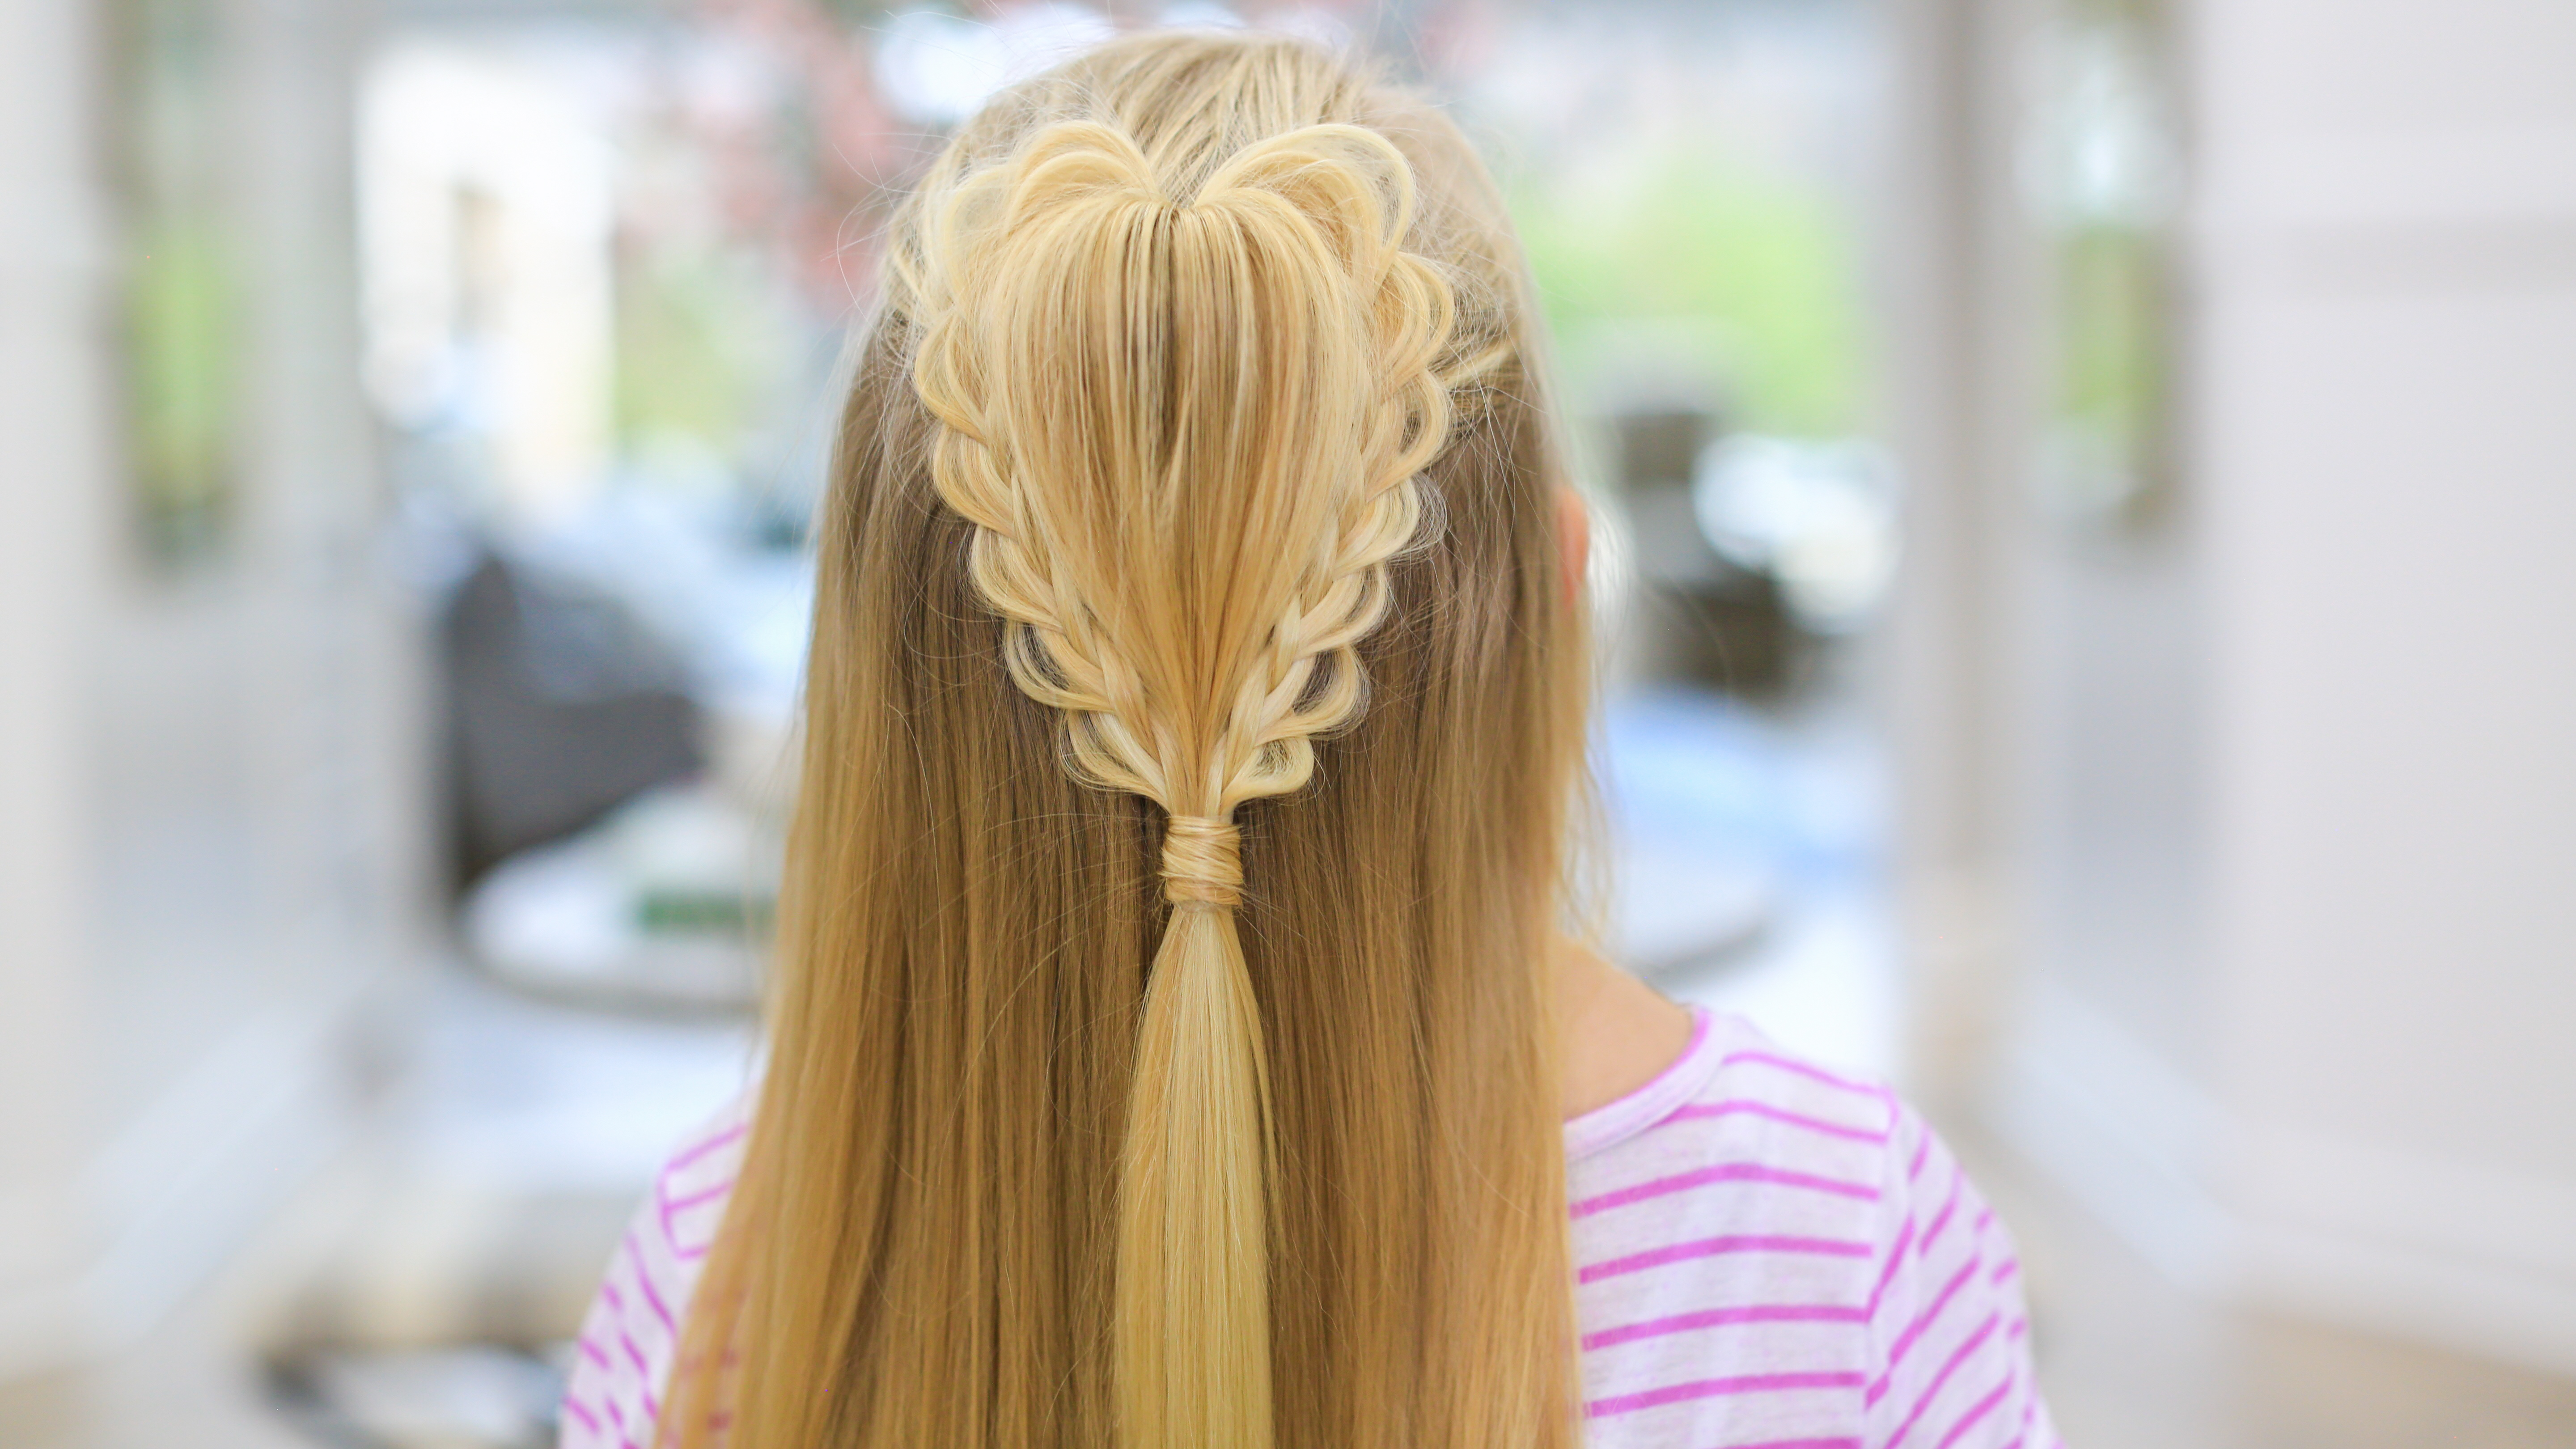 Hairstyles January 2019: Valentine's Day Hairstyle